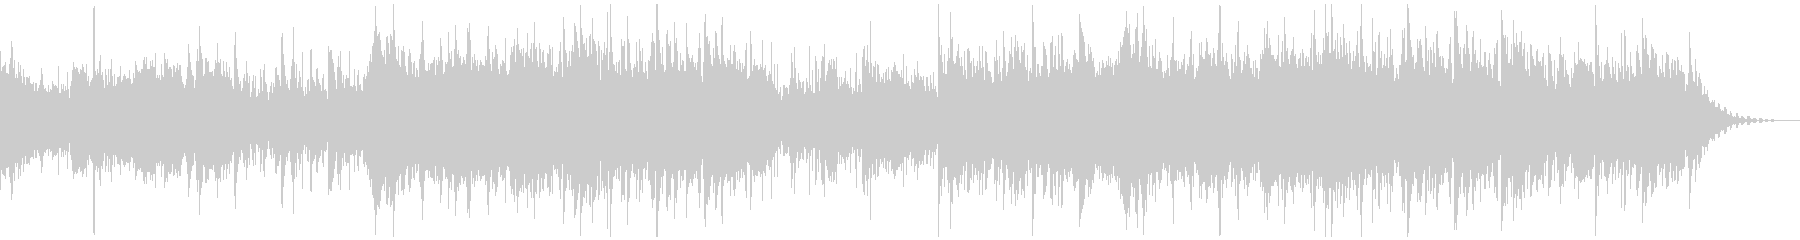 Quiet, serious, commentary, ambi, short's unreproduced waveform